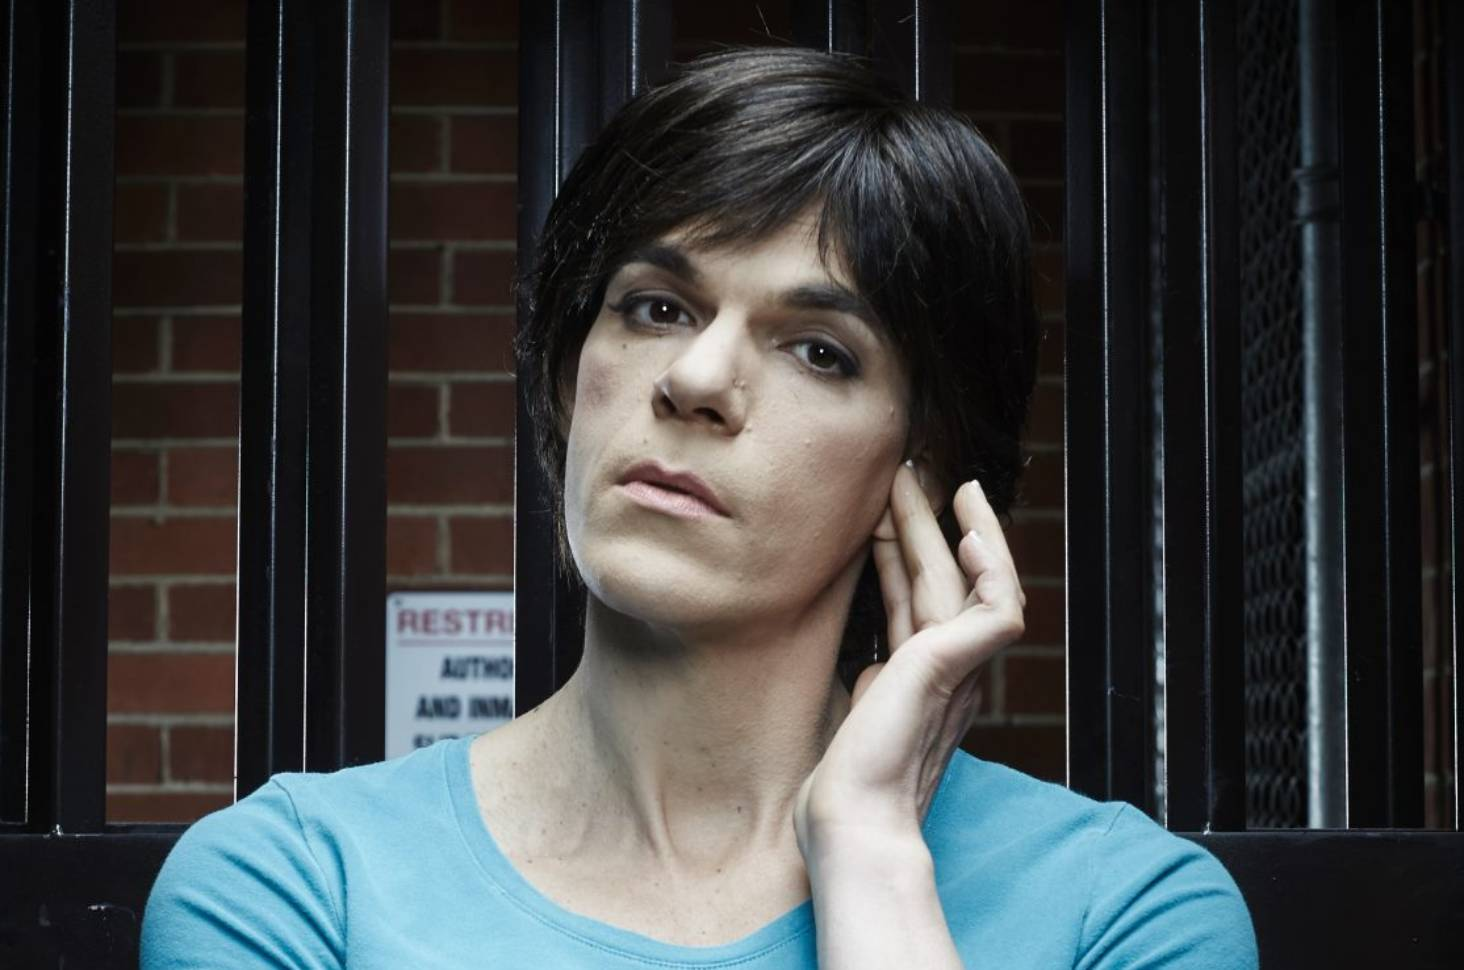 Wentworth actor Socratis Otto talks about playing a transgender person